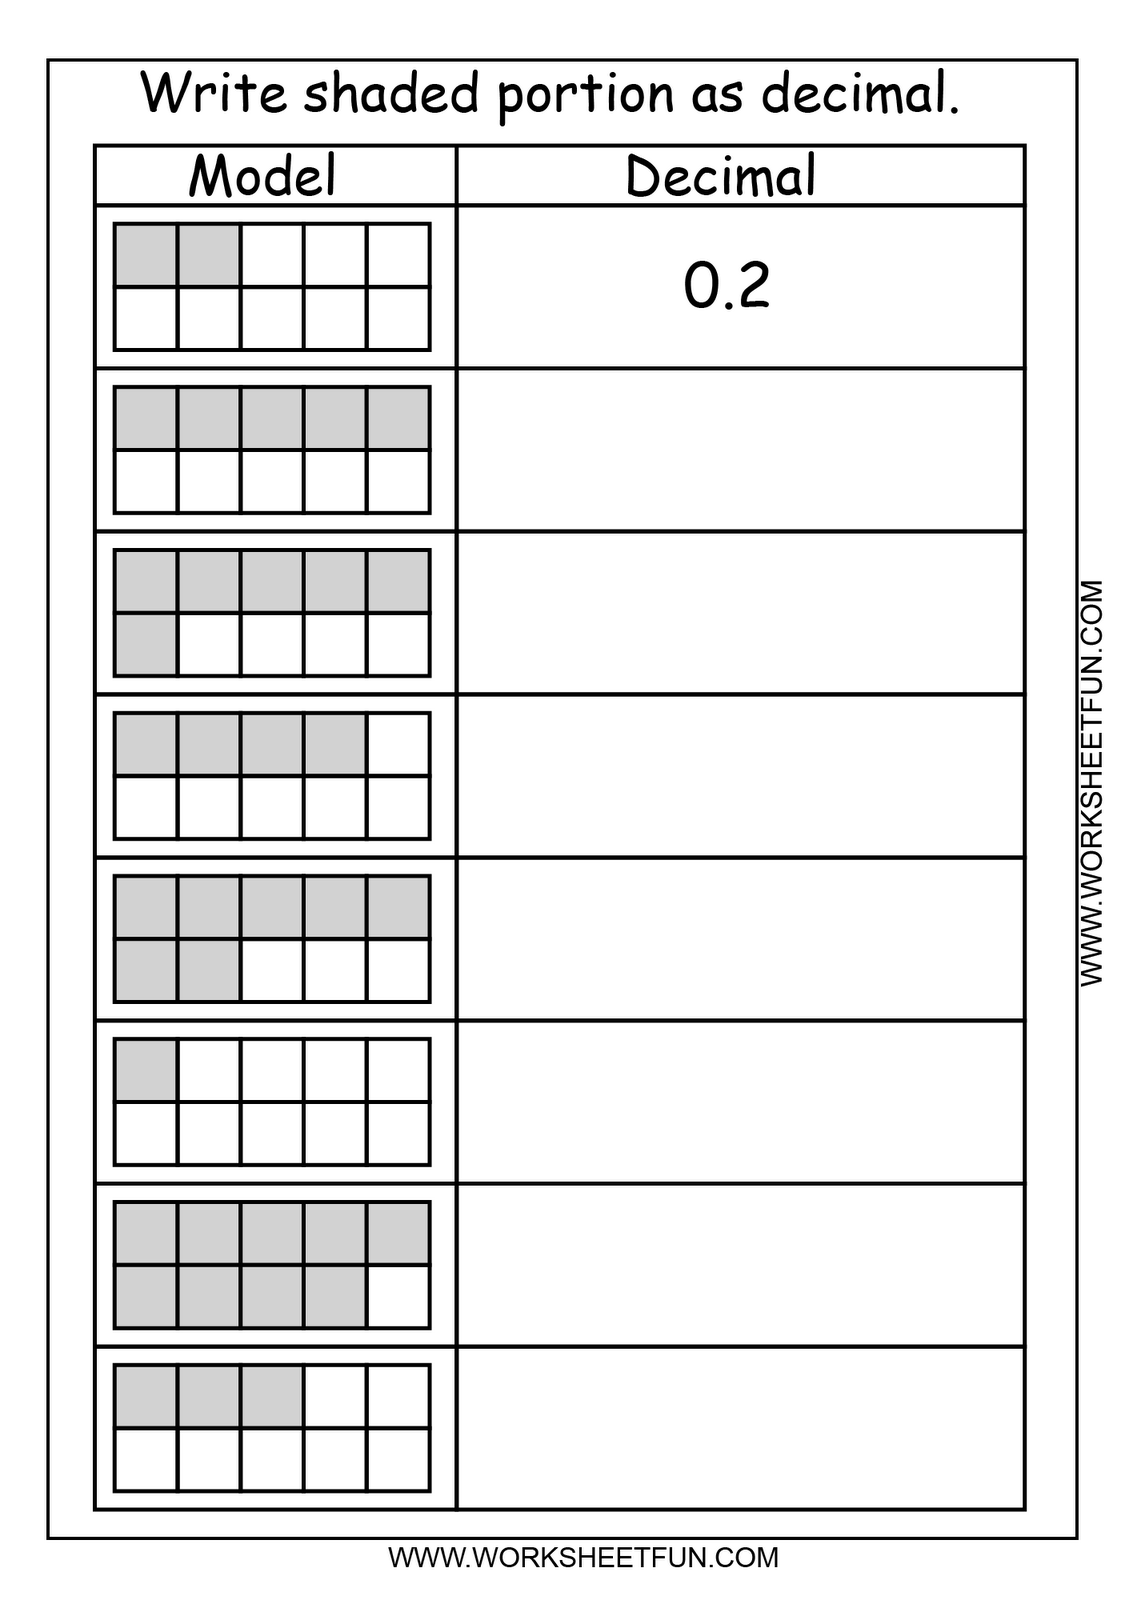 medium resolution of Worksheetfun - FREE PRINTABLE WORKSHEETS   Fractions worksheets